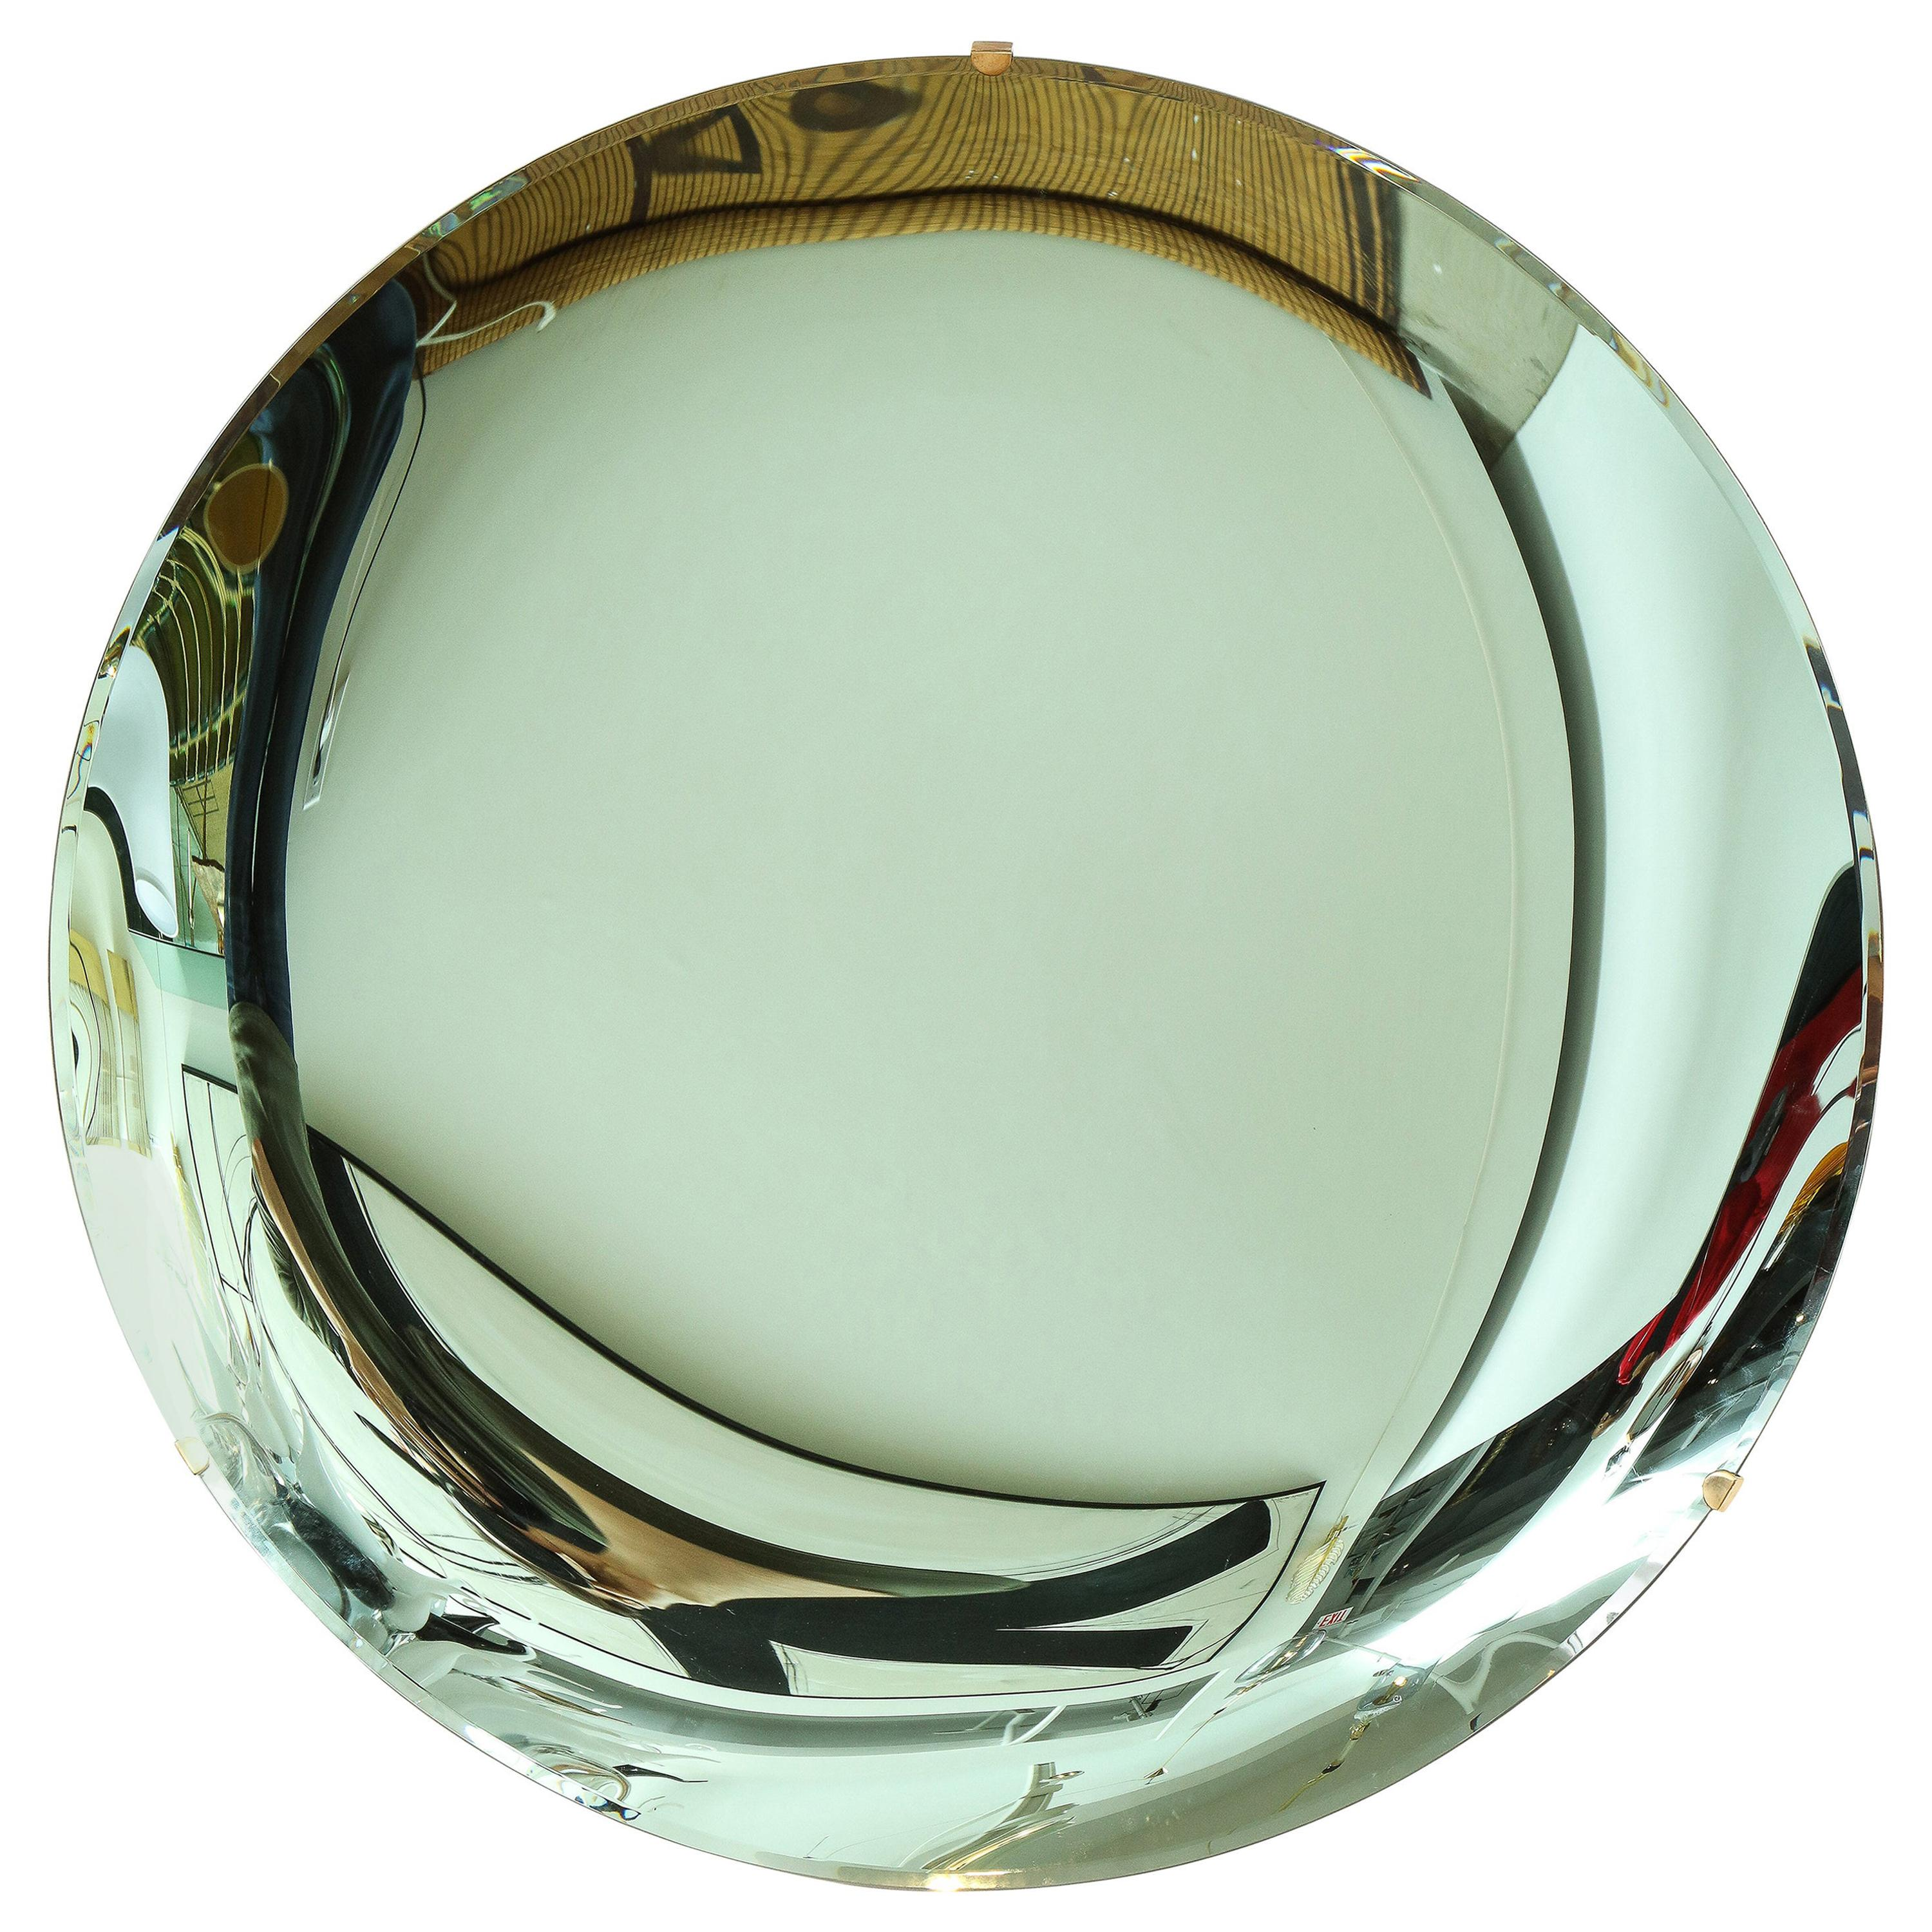 """Large Sculptural Round Concave Green """"Verde"""" Mirror or Wall Art, Italy, 2021"""